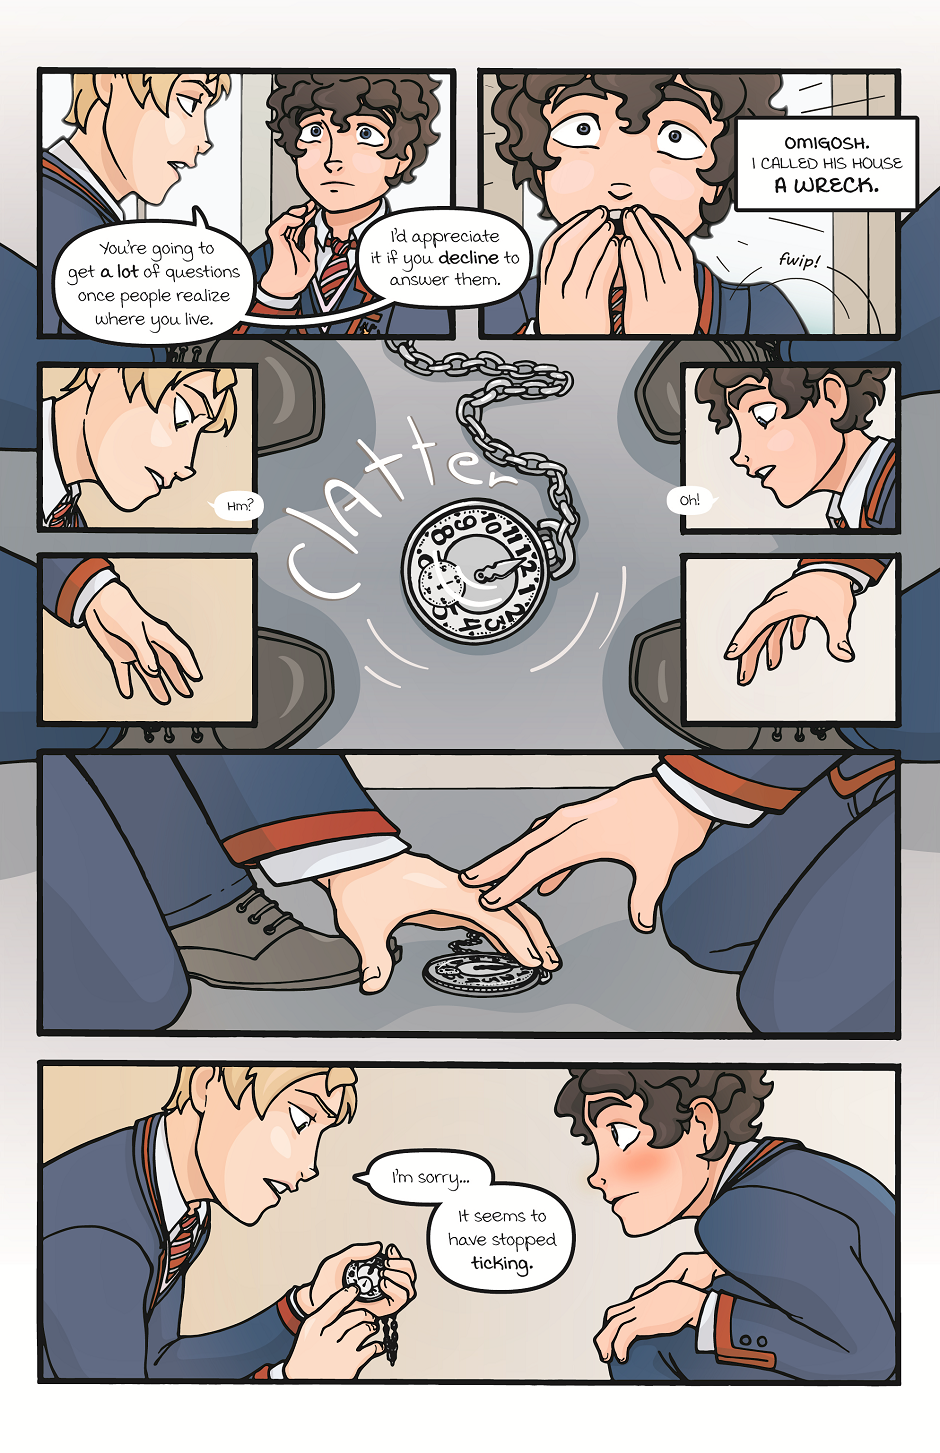 MBB_Ch02-P11_forSS.png